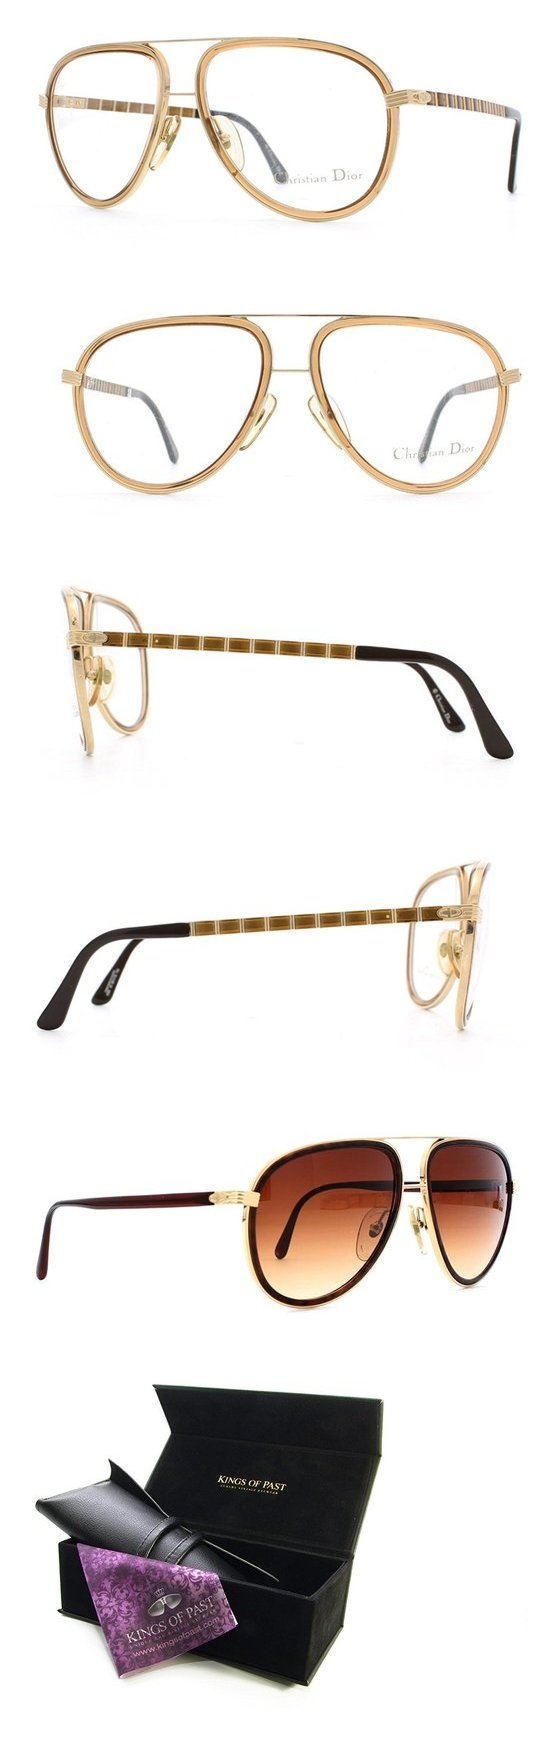 Christian Dior 2526 FLEX 43 Gold and Brown Authentic Men Vintage ...